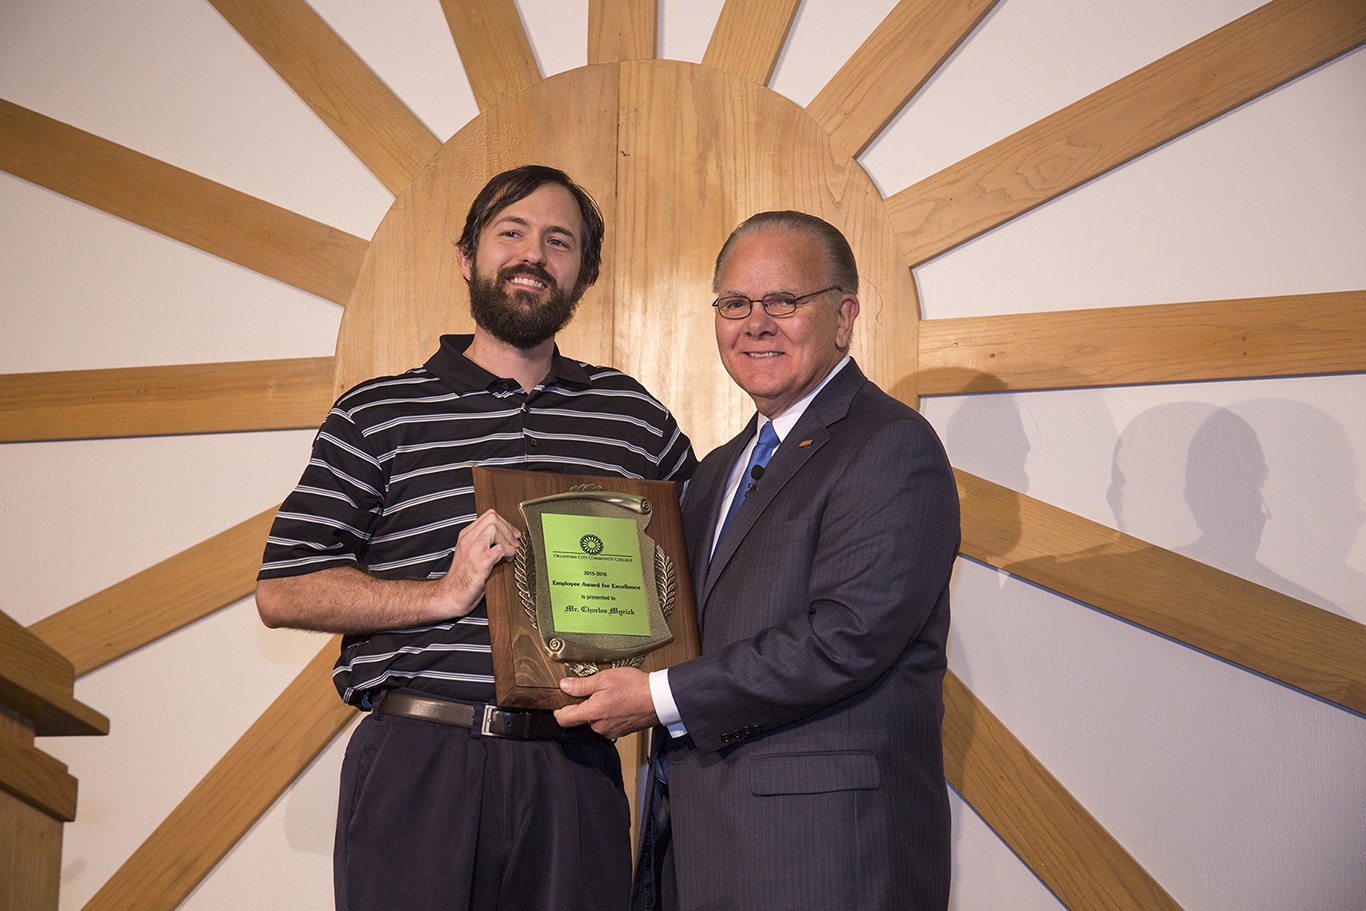 Employees recognized at annual award ceremony